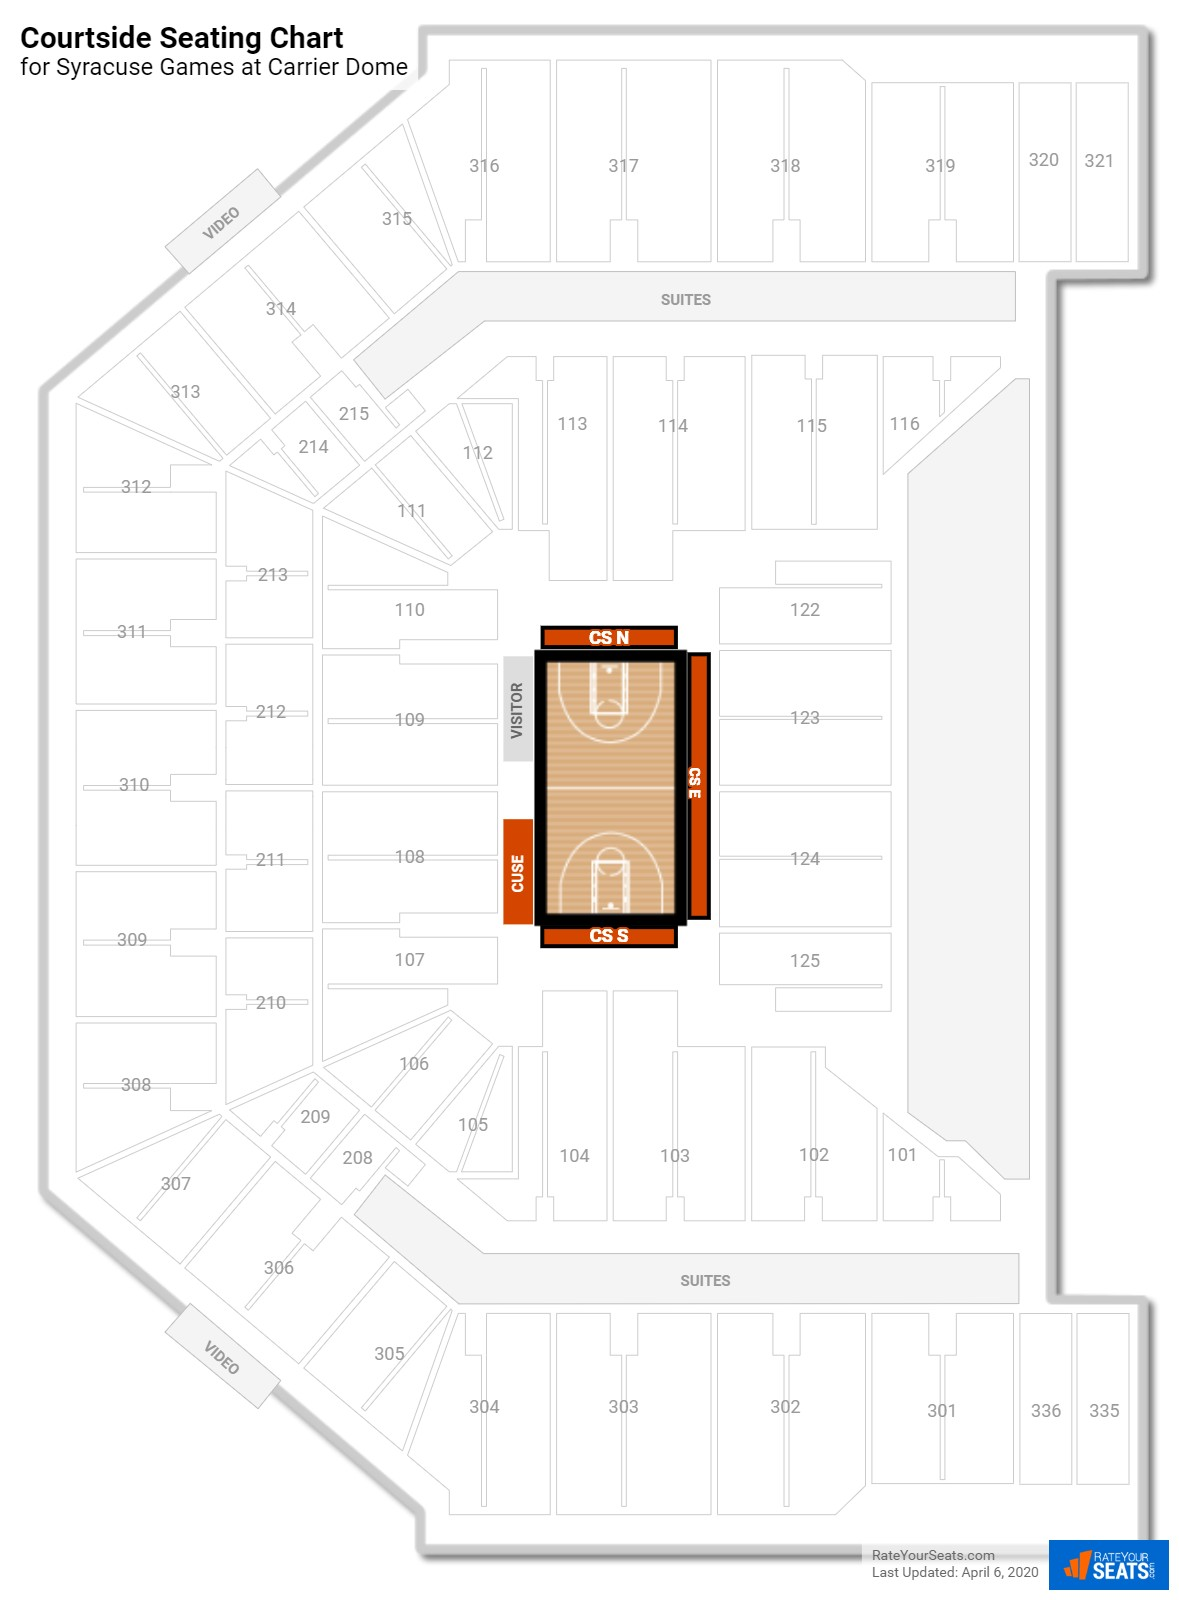 Carrier Dome Courtside seating chart